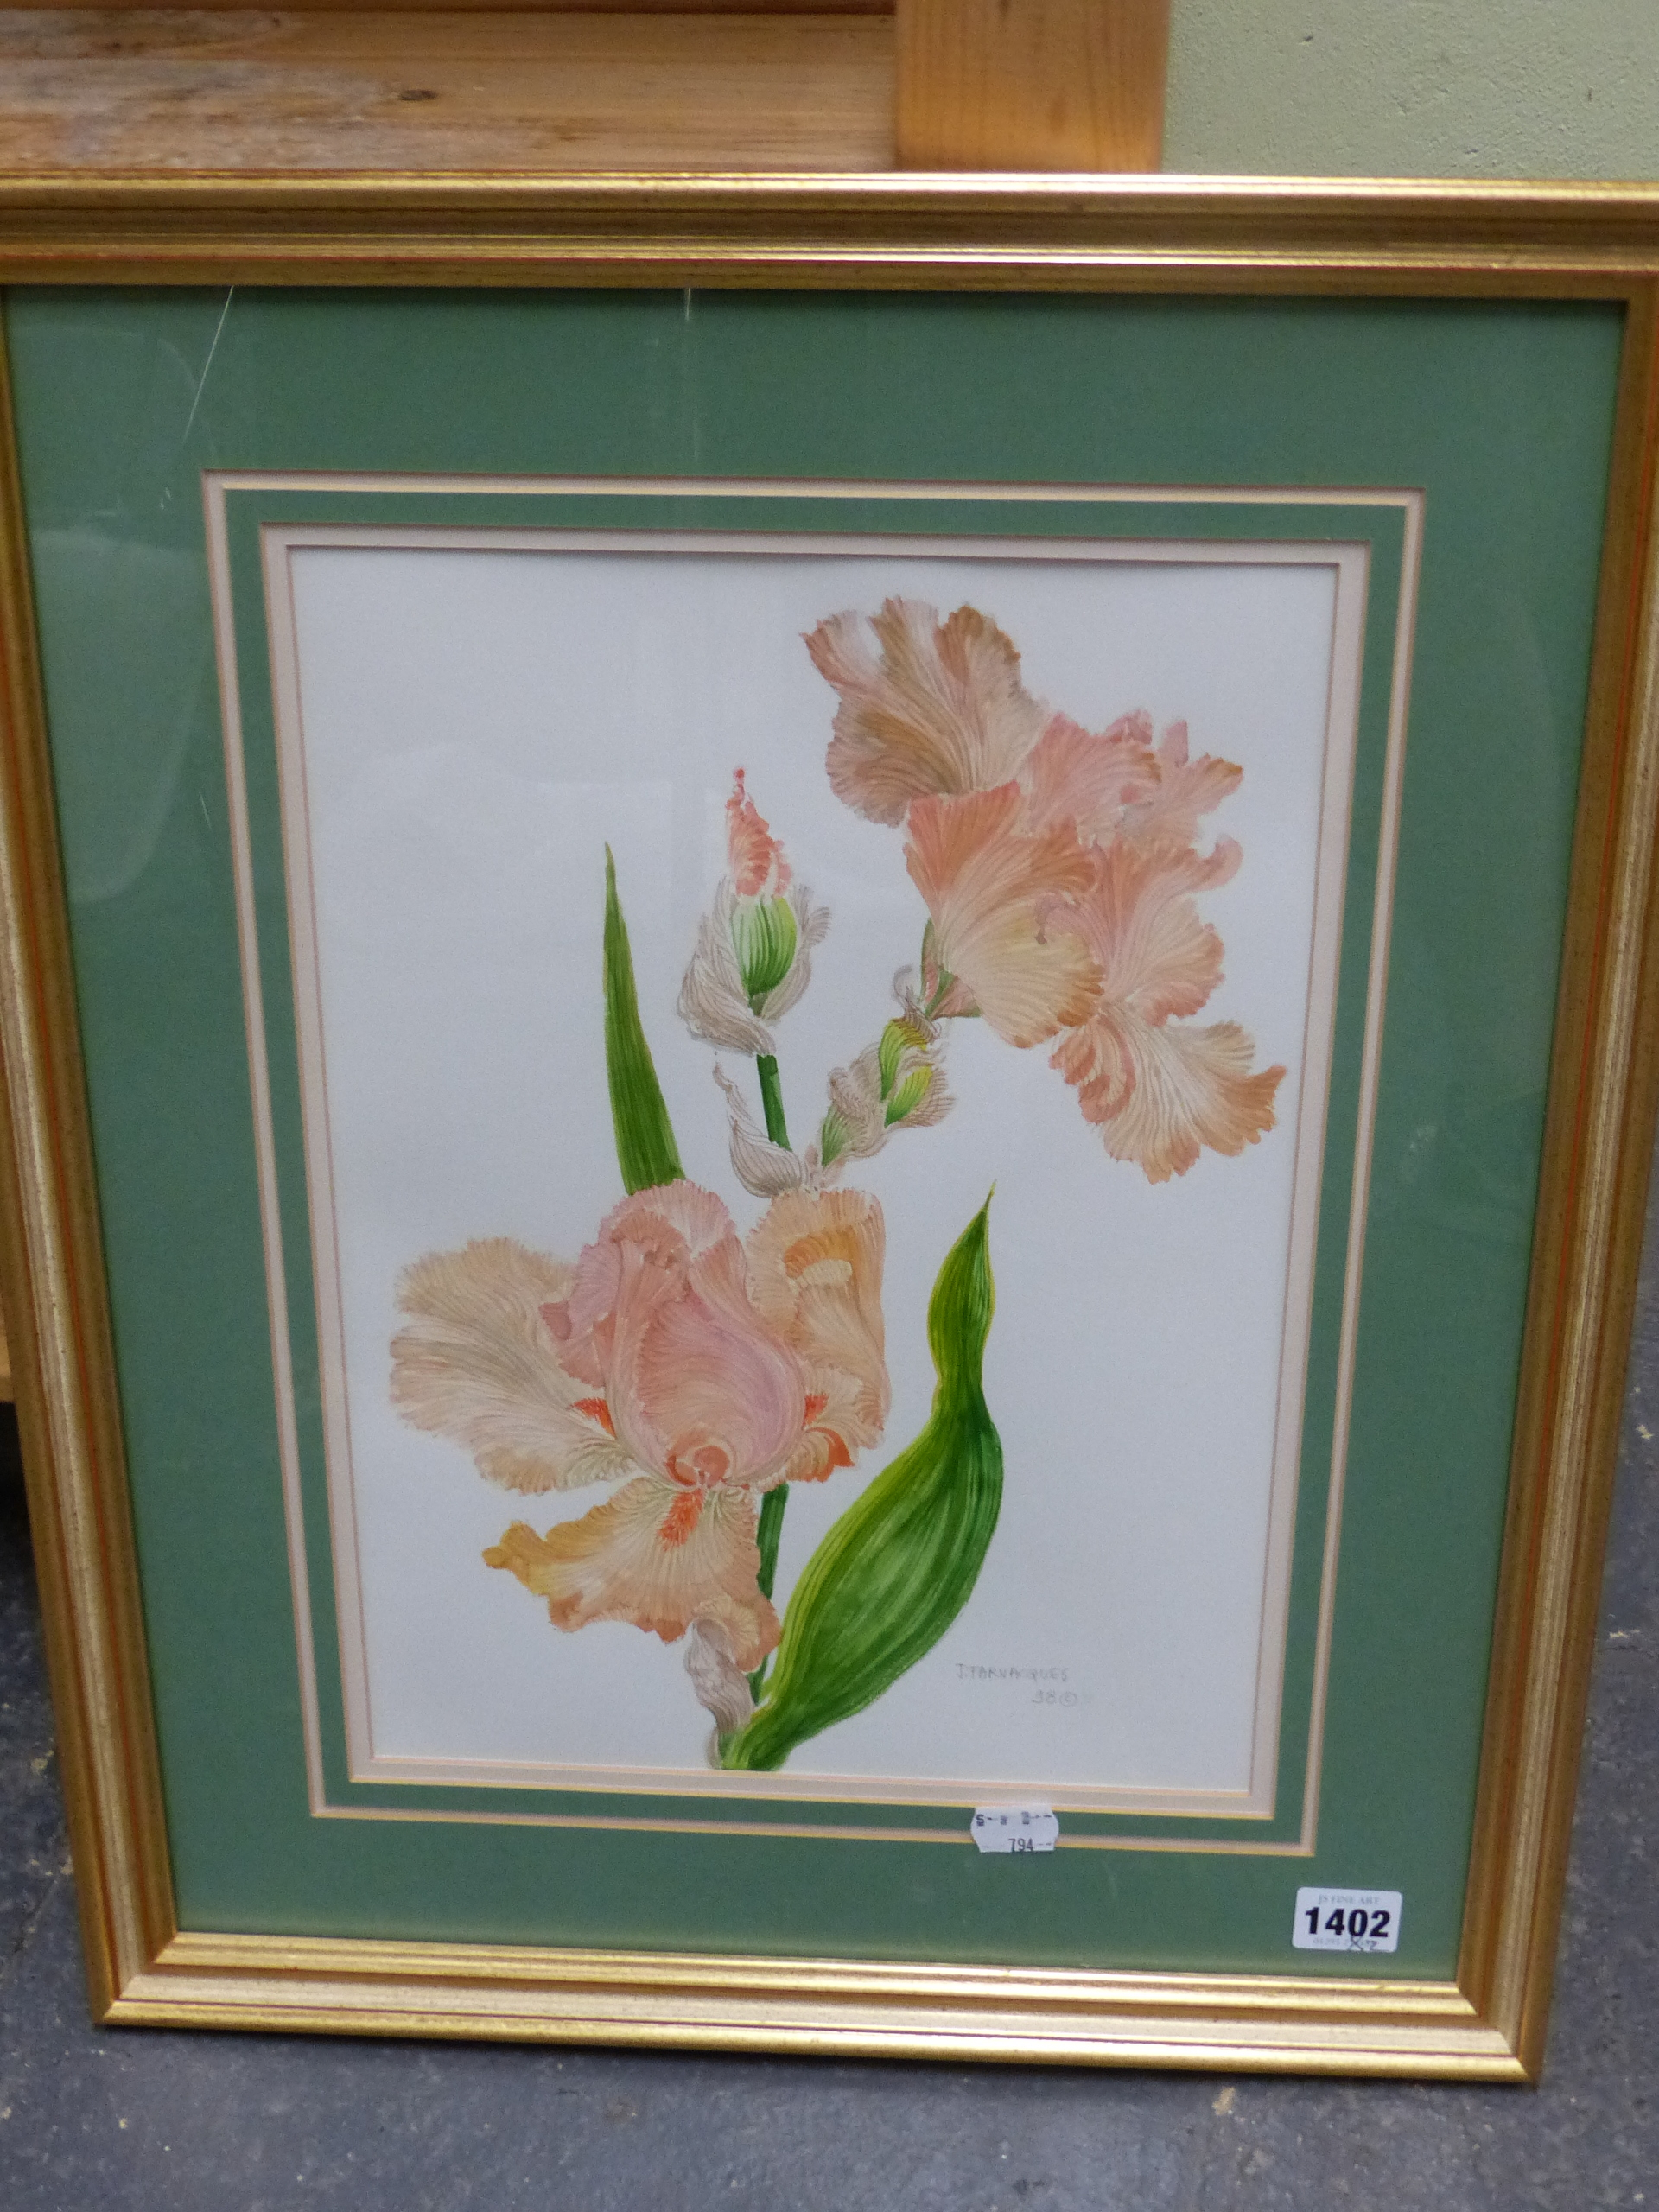 •J. FARVACQUES (20th CENTURY SCHOOL). ARR. THREE BOTANICAL STUDIES, BOTH SIGNED WATERCOLOURS. 36 x - Image 5 of 6